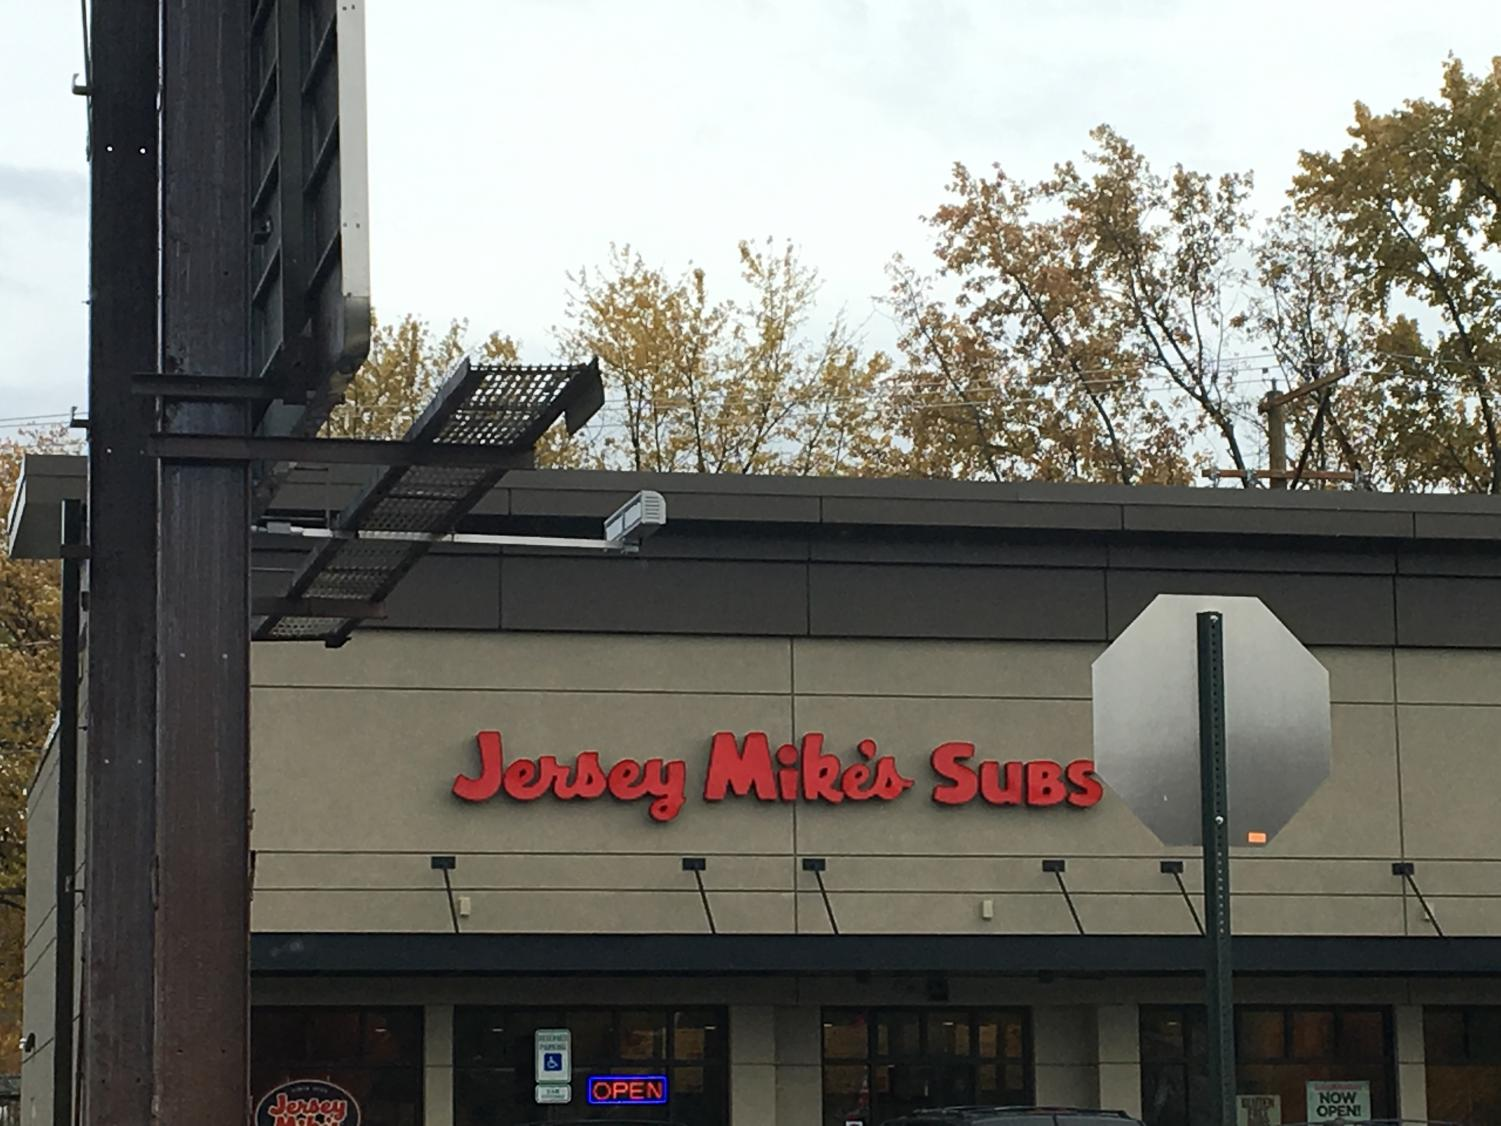 The outside of Jersey Mike's provides a lot of parking for people to come in and get a sub. The outside features a bright and colorful sign that will appeal the attention from drivers who pass by. The outside is includes entertaining music, cool and different wall art.